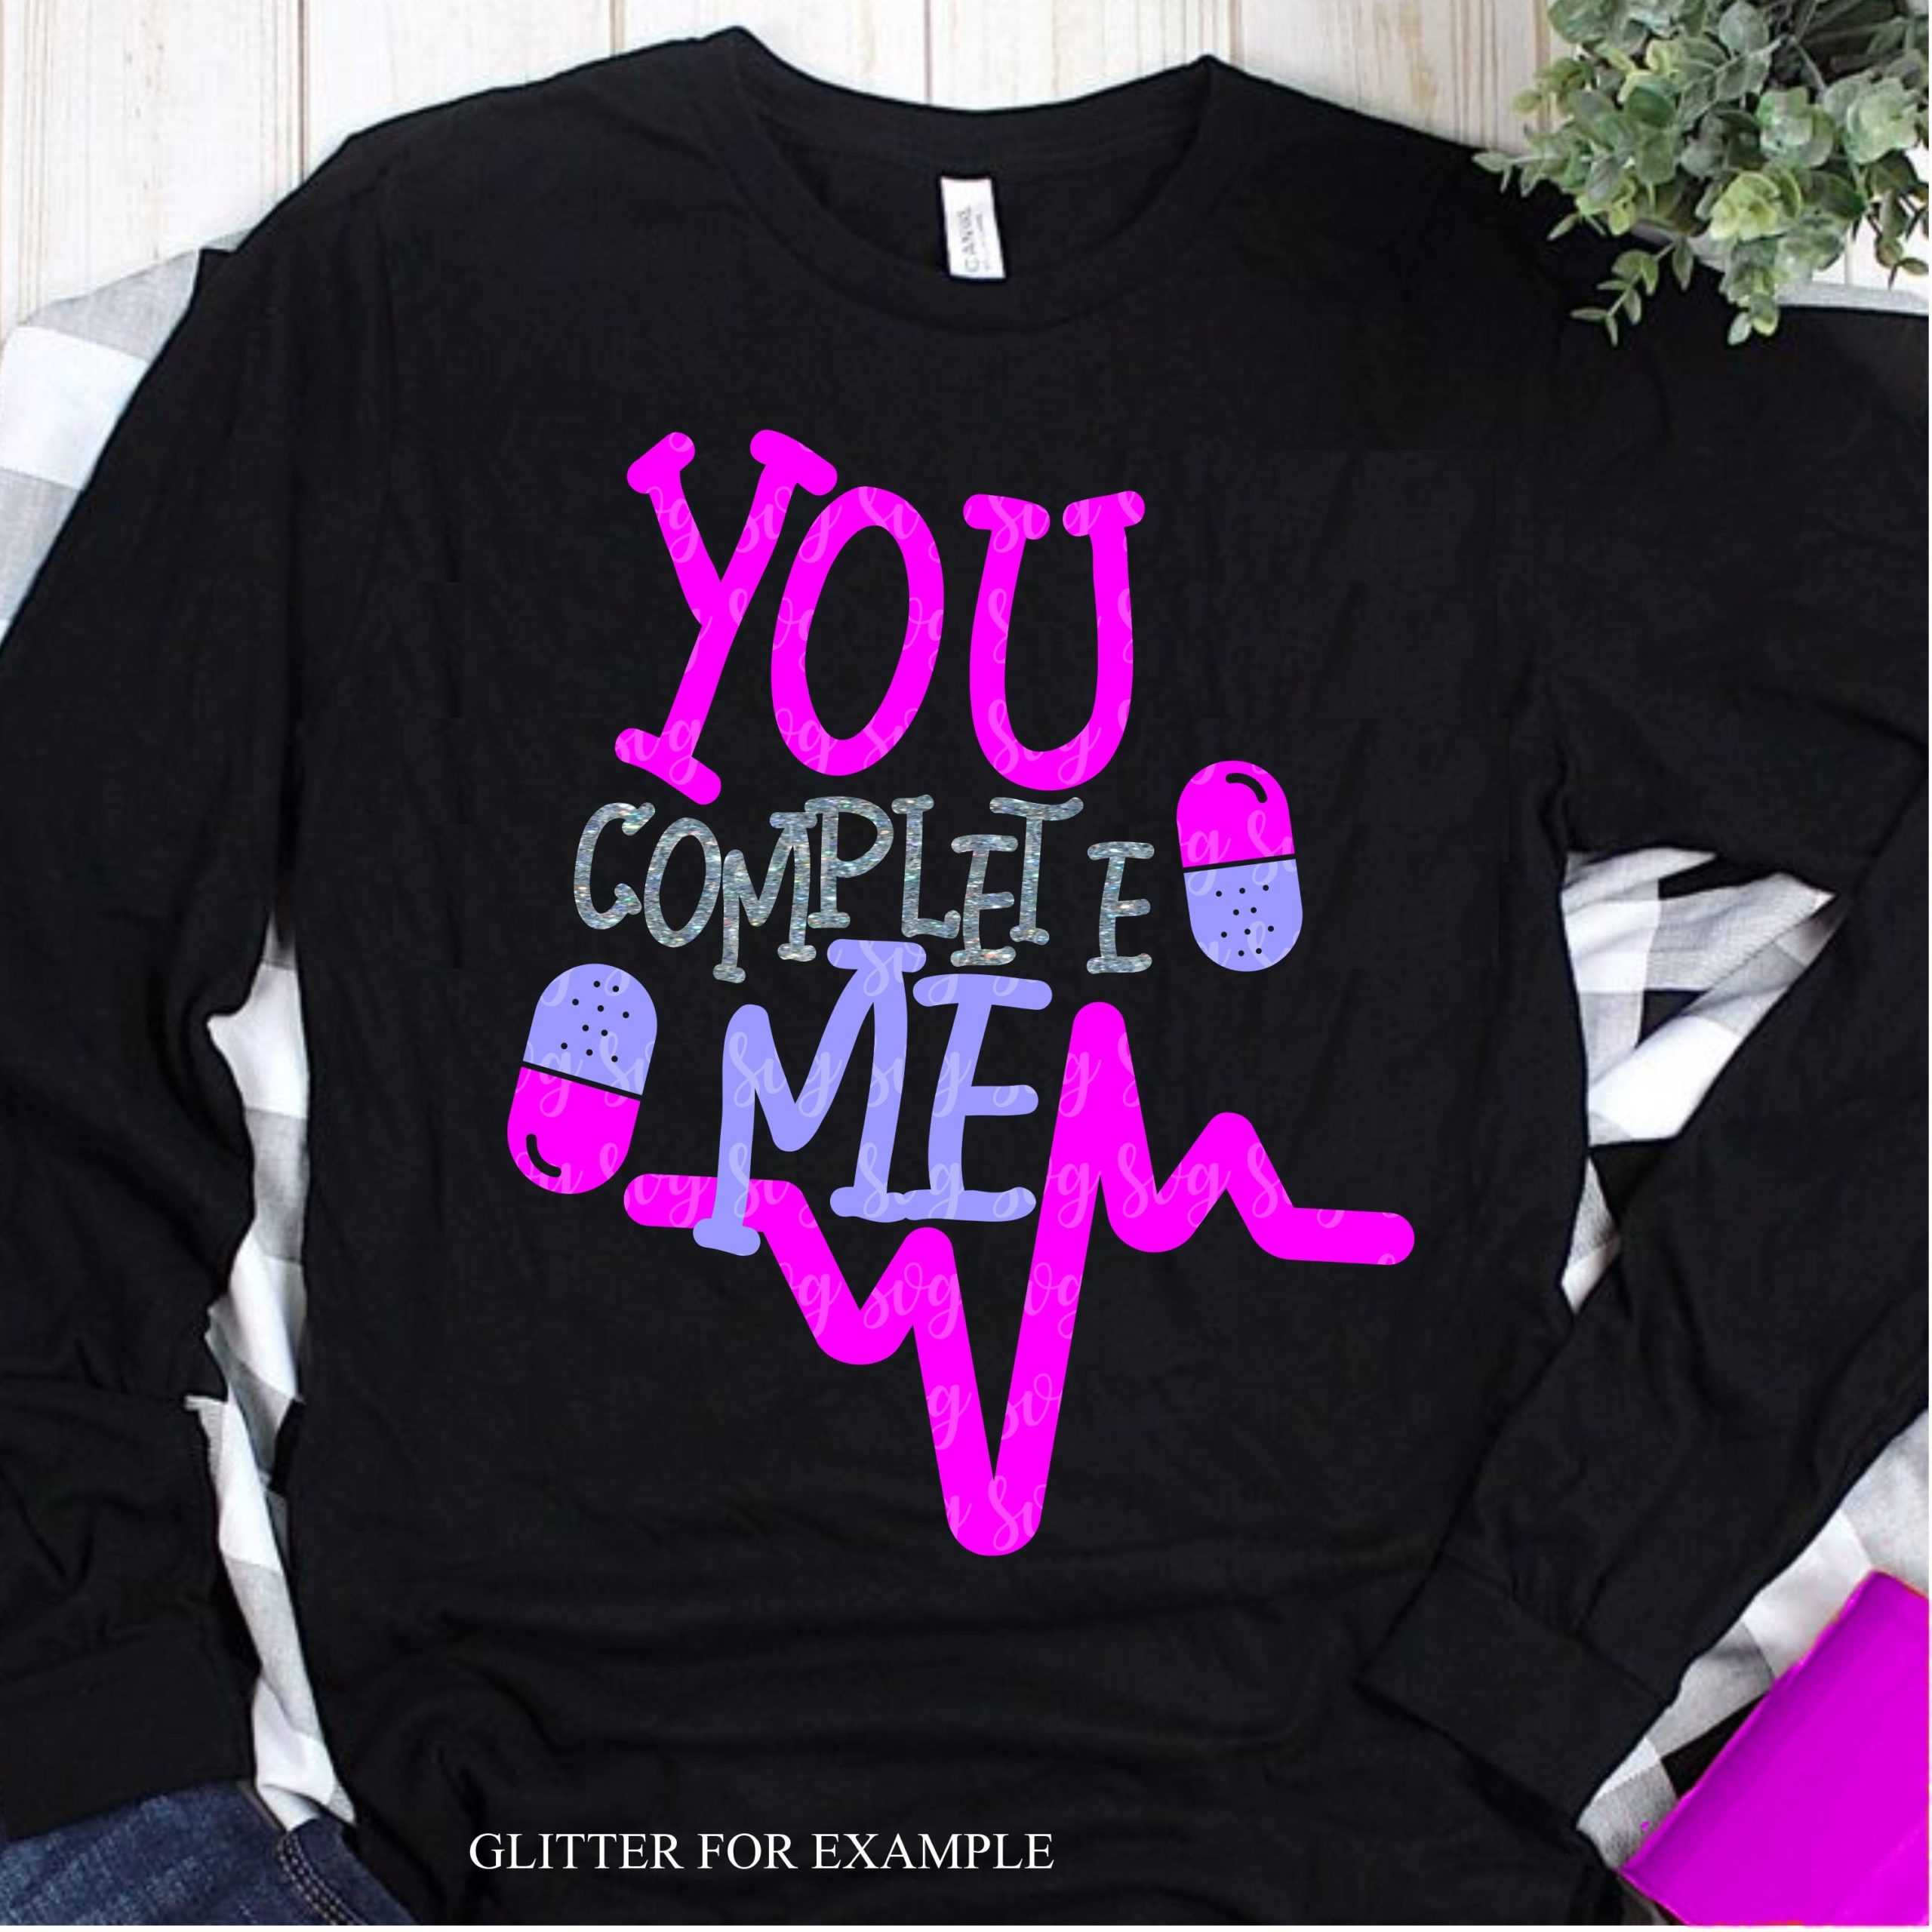 You Complete Me Svg Pill Svg Valentine Love Svg Valentine Svg Valentines Svg Valentine Tshirt Svg Svg For Cricut Love Svg Svg For Cricut